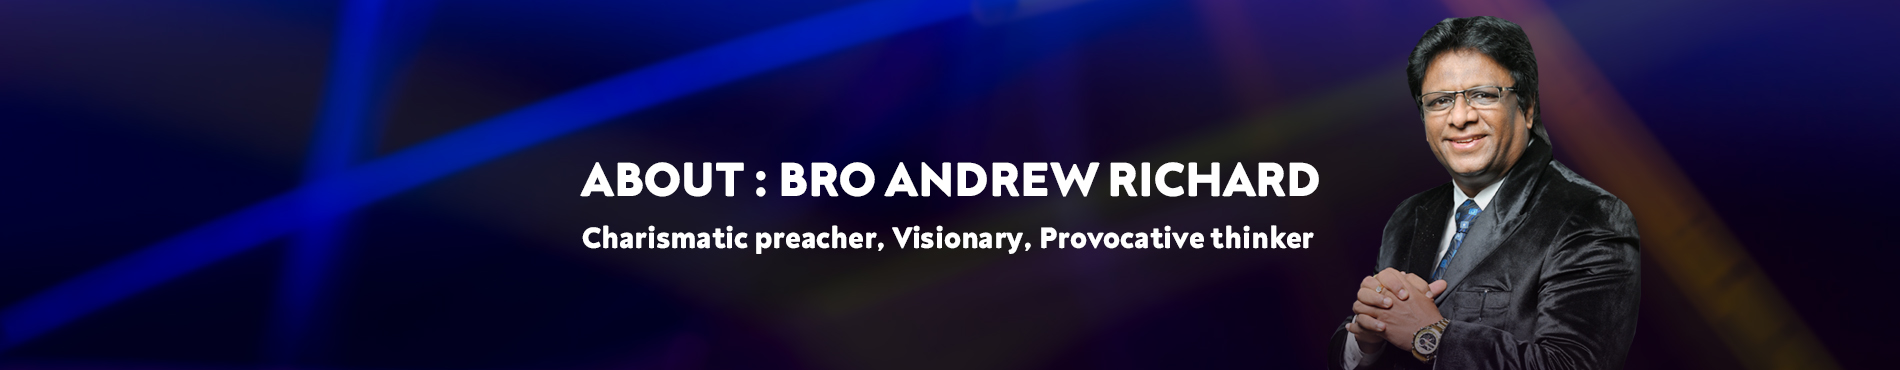 Bro Andrew Richard is a charismatic preacher, Visionary, Provocative thinker who opeartes Grace Ministry in Mangalore, a global humanitarian organization in India with the aim of reaching the unreached.